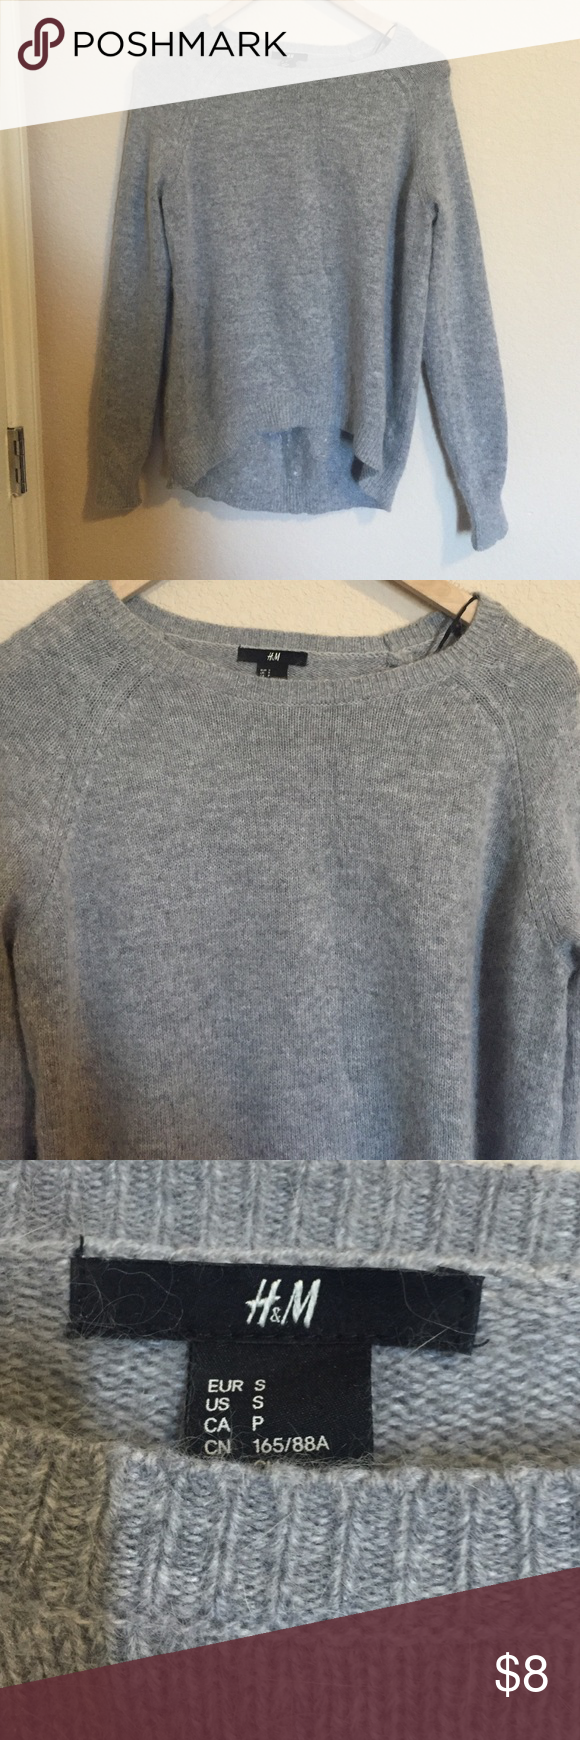 Gray fuzzy sweater Hardly worn. Good condition. H&M Sweaters Crew & Scoop Necks